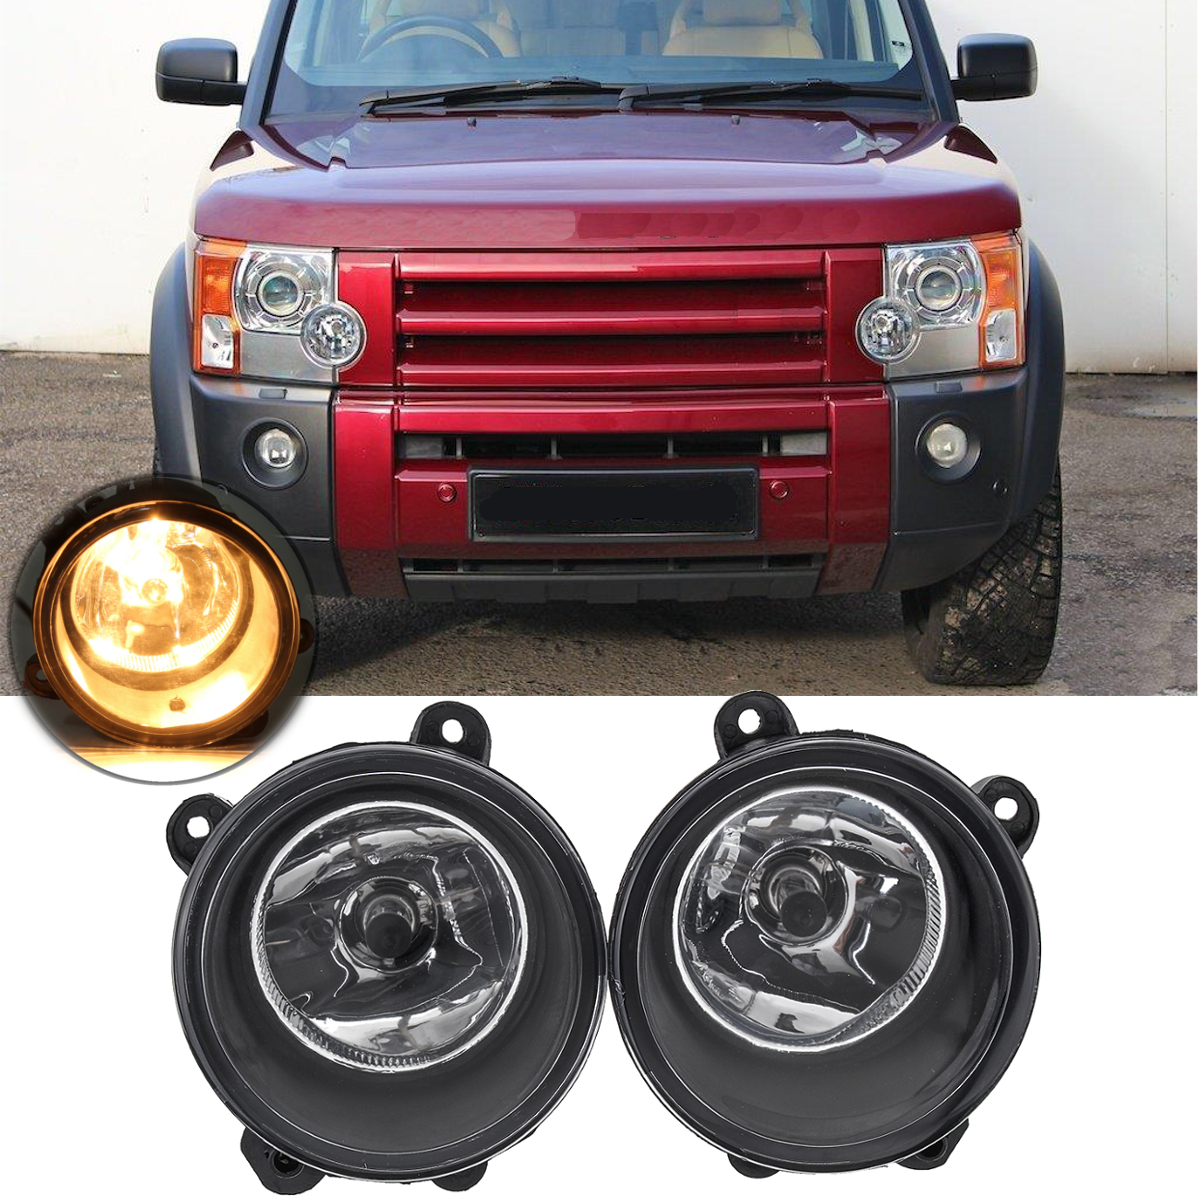 1Pair Car Fog Lights Clear Lamp H11 Bulbs Front Right+Left Fog Lamp For Land Rover Discovery 3 X2 2003 2009